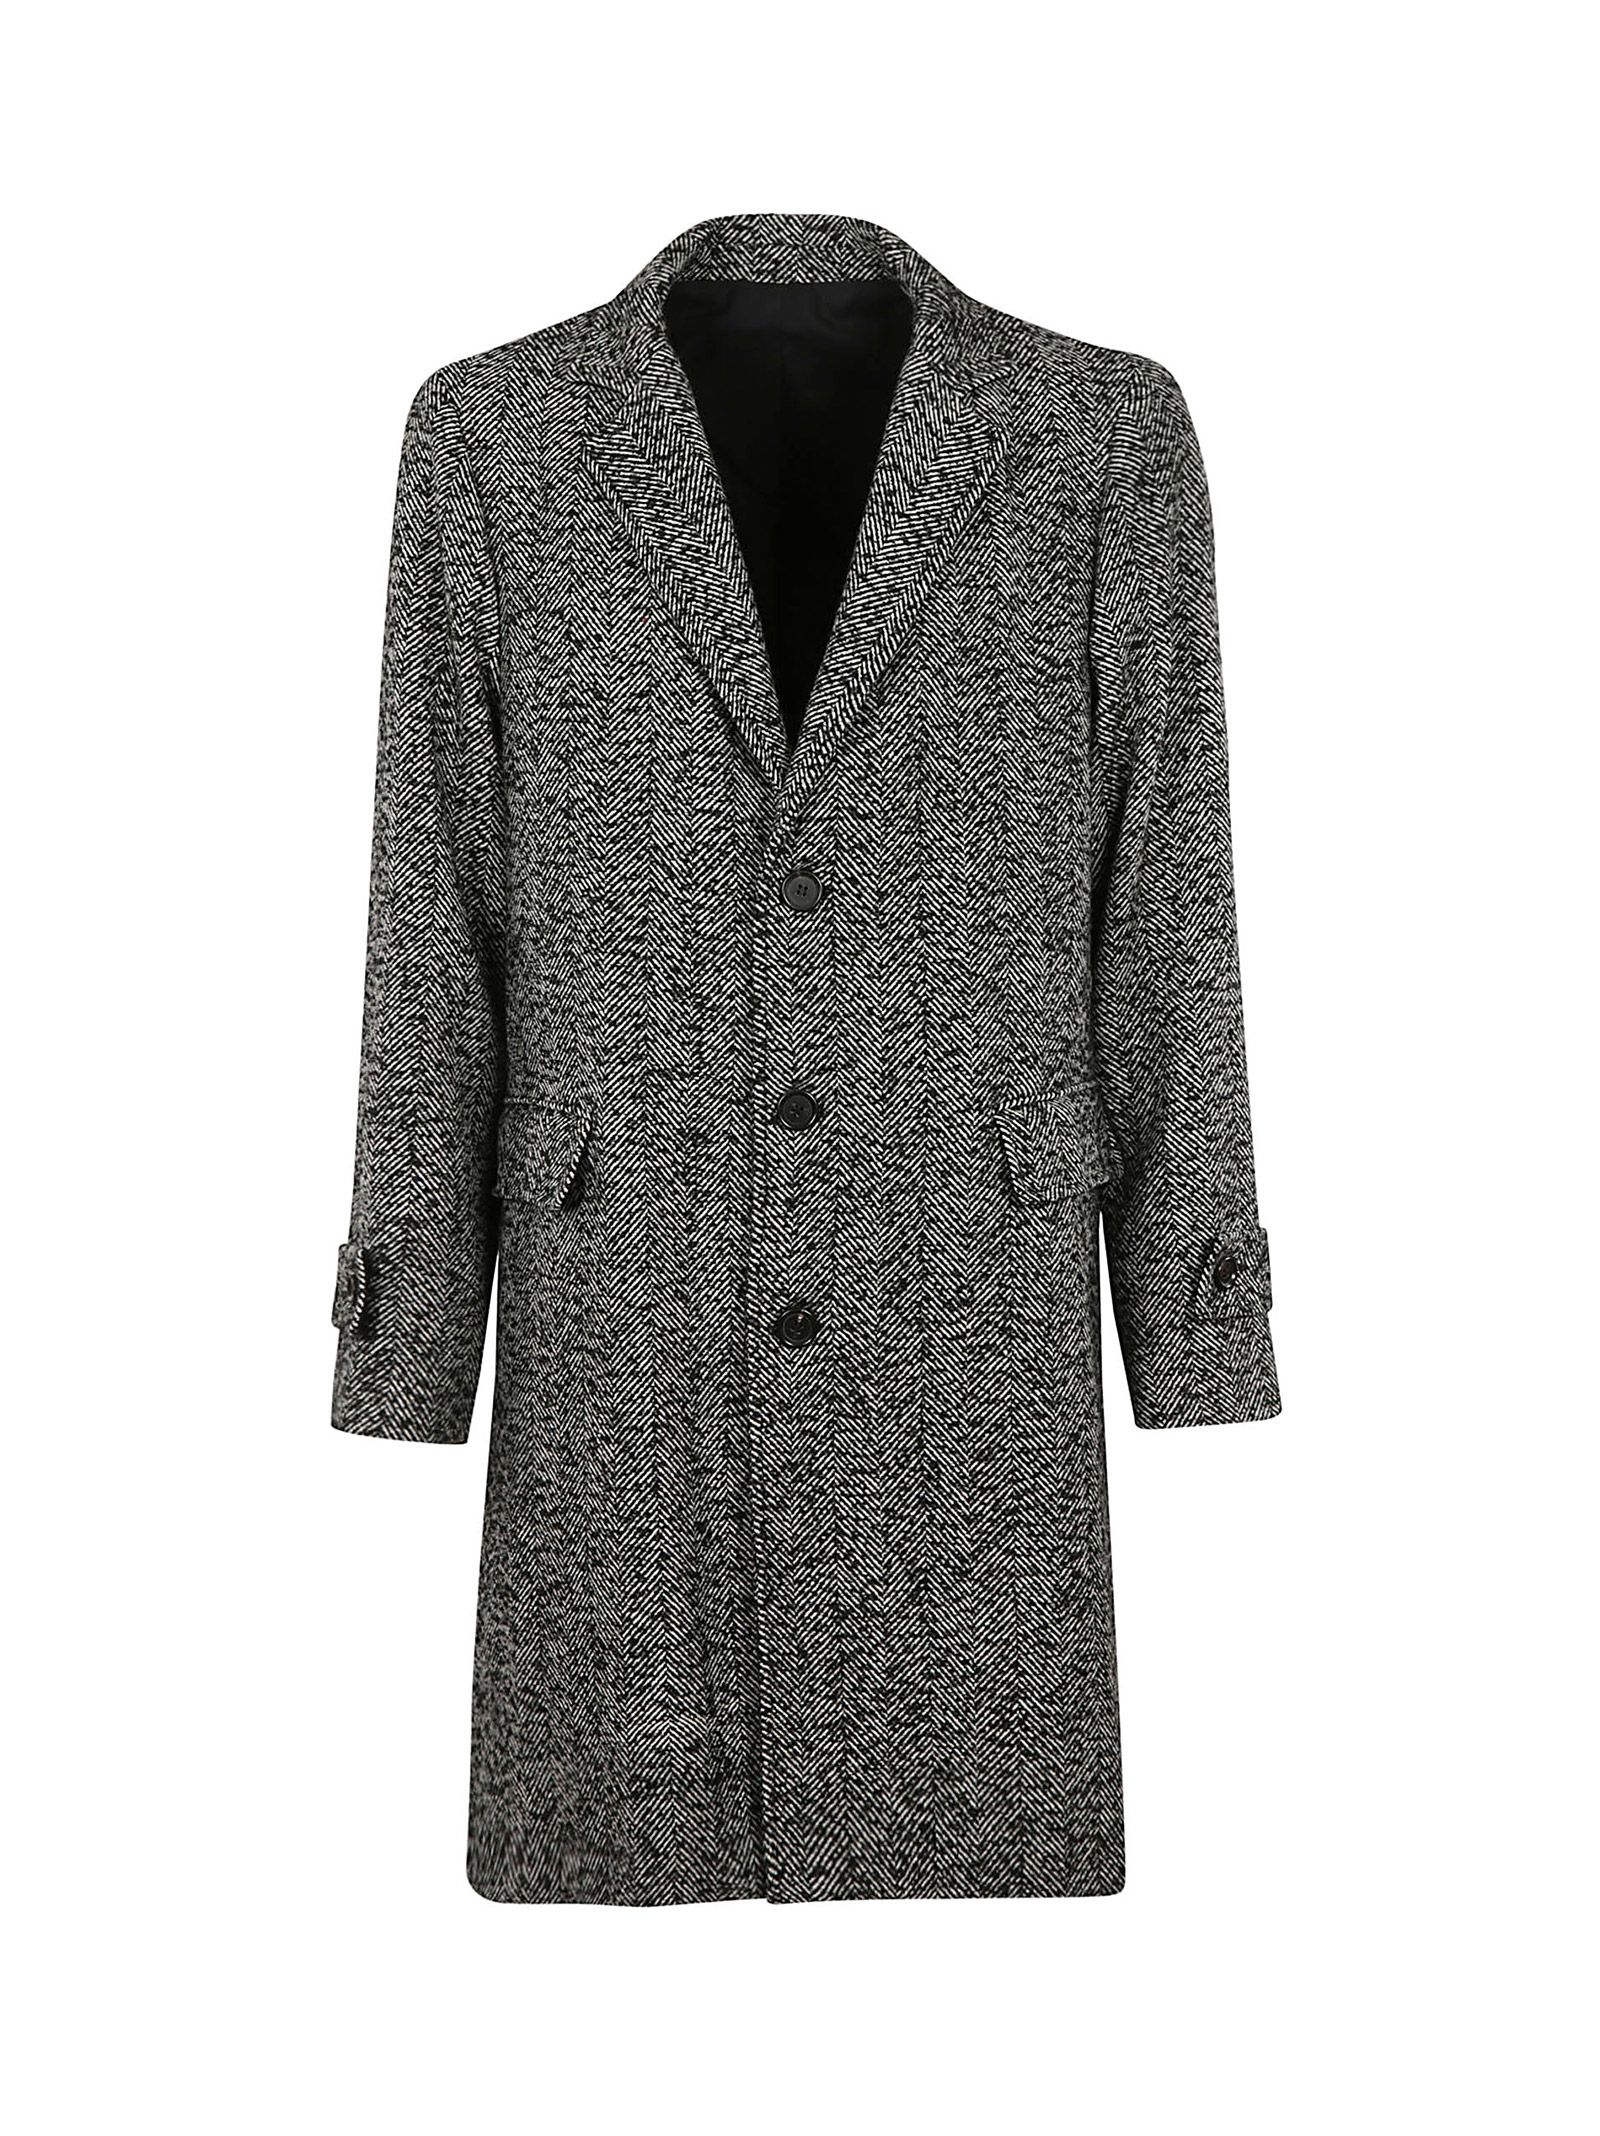 THE EDITOR Single Breasted Coat in White